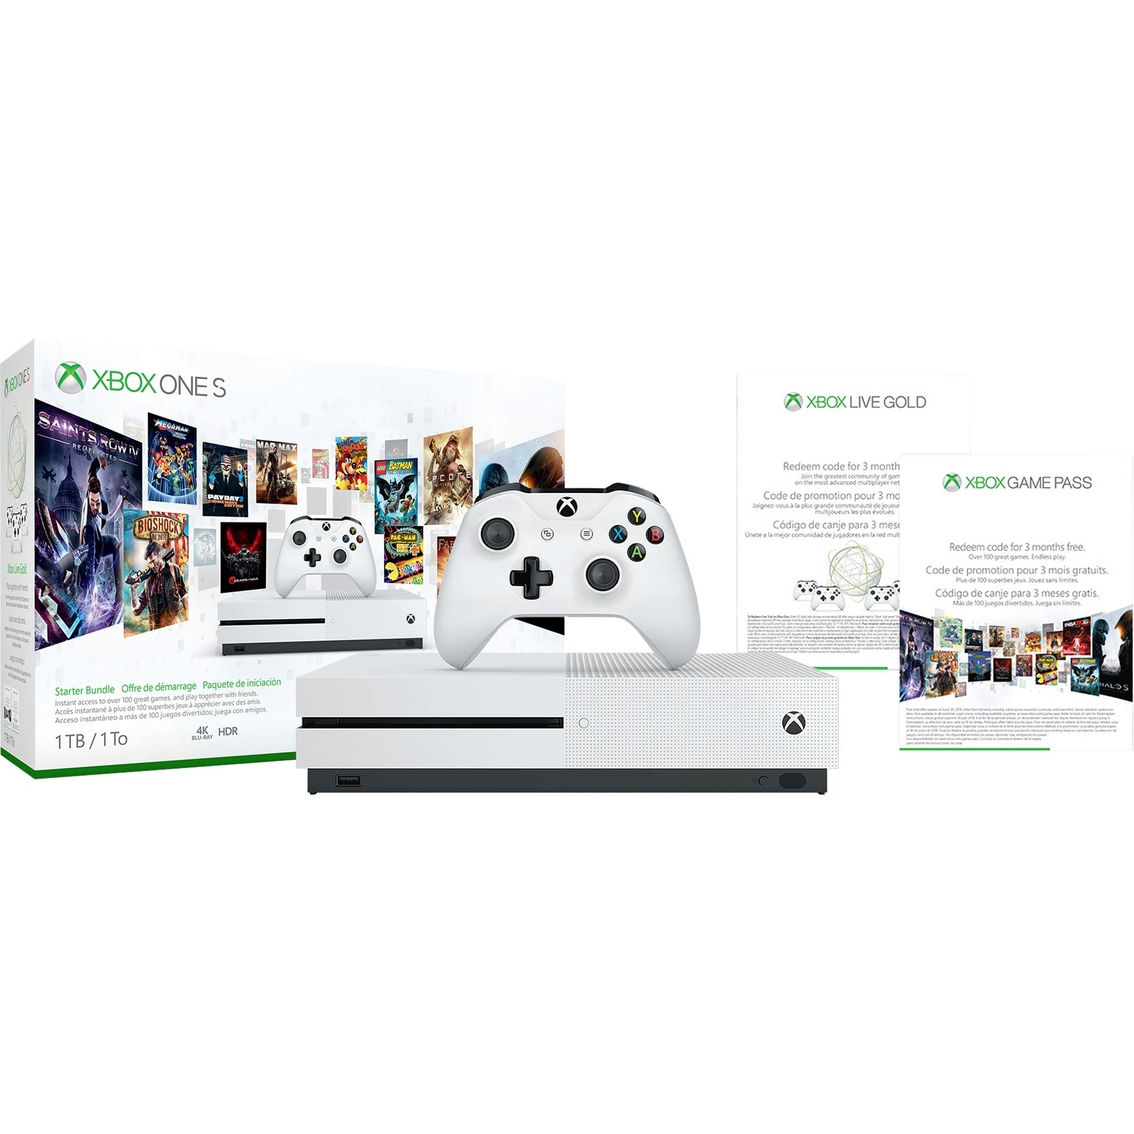 Xbox One S 1tb 3 Month Live/3 Month Game Pass Bundle | Xbox